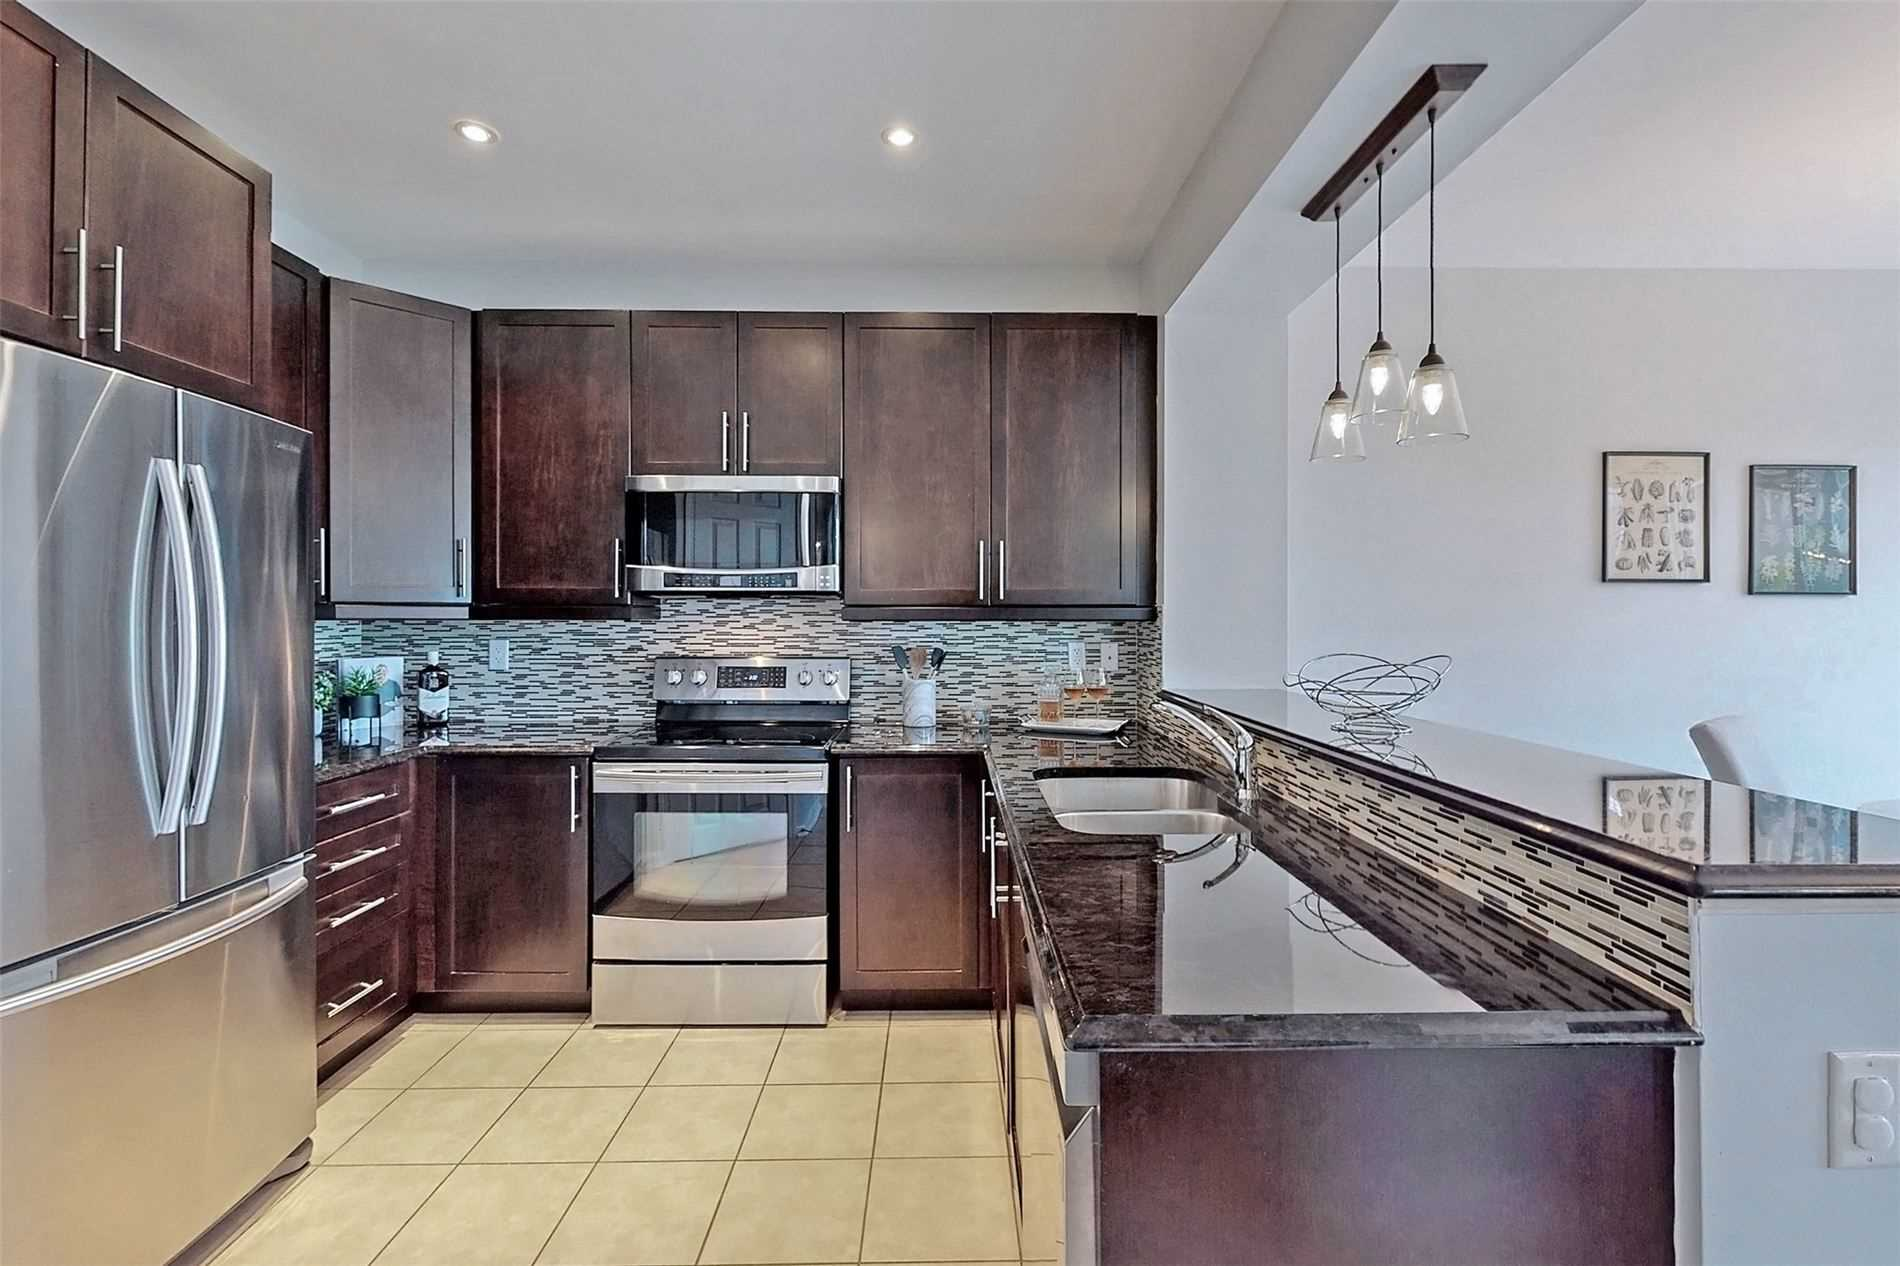 240 Leiterman Dr - Willmont Detached for sale, 3 Bedrooms (W5398871) - #8